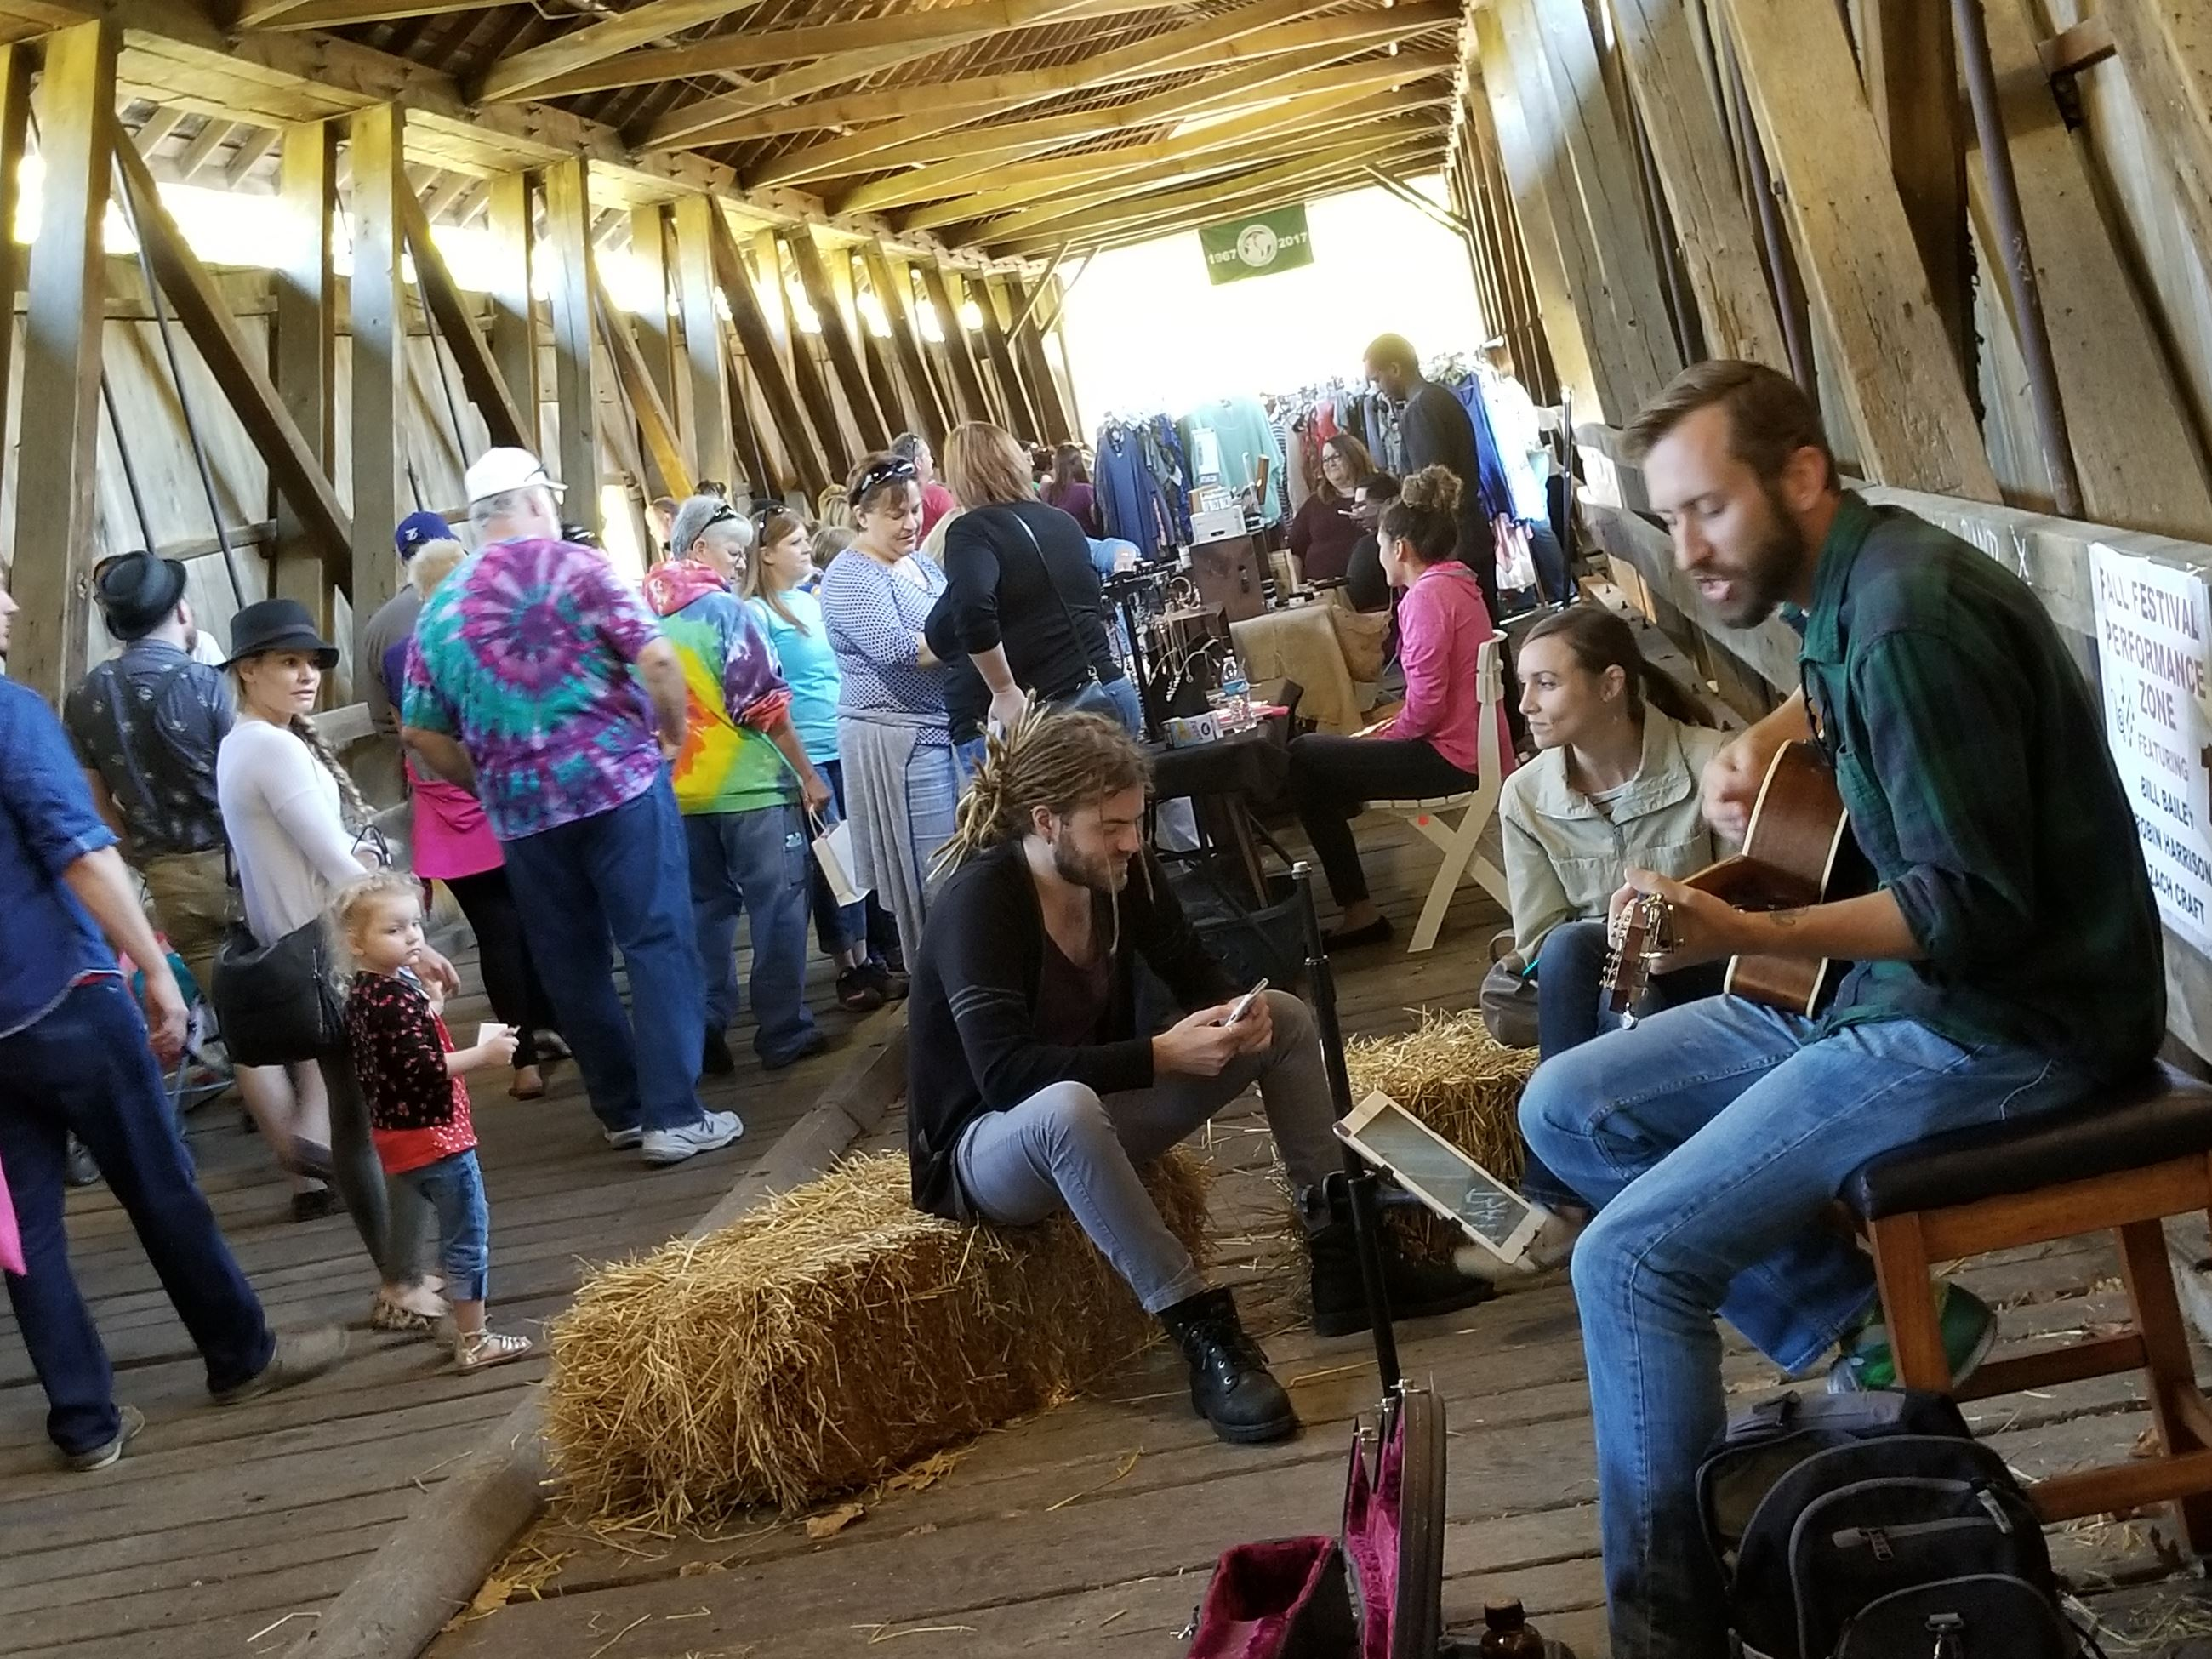 Festival goers in the bridge listening to music